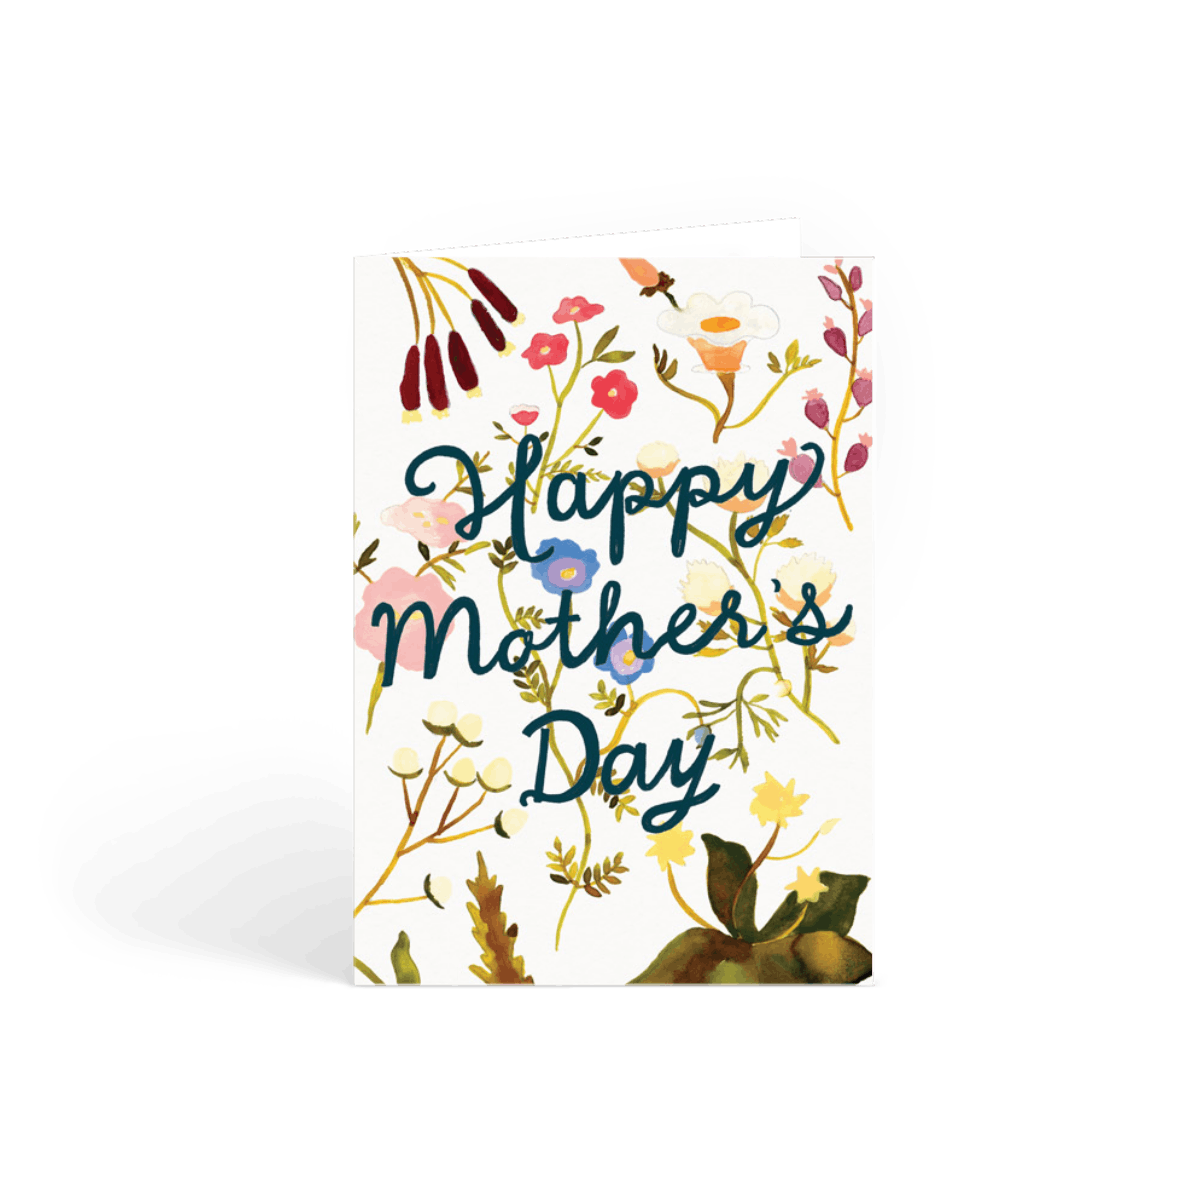 Https%3a%2f%2fwww.papier.com%2fproduct image%2f16936%2f2%2fmother s day wildflowers 4455 front 1580765833.png?ixlib=rb 1.1